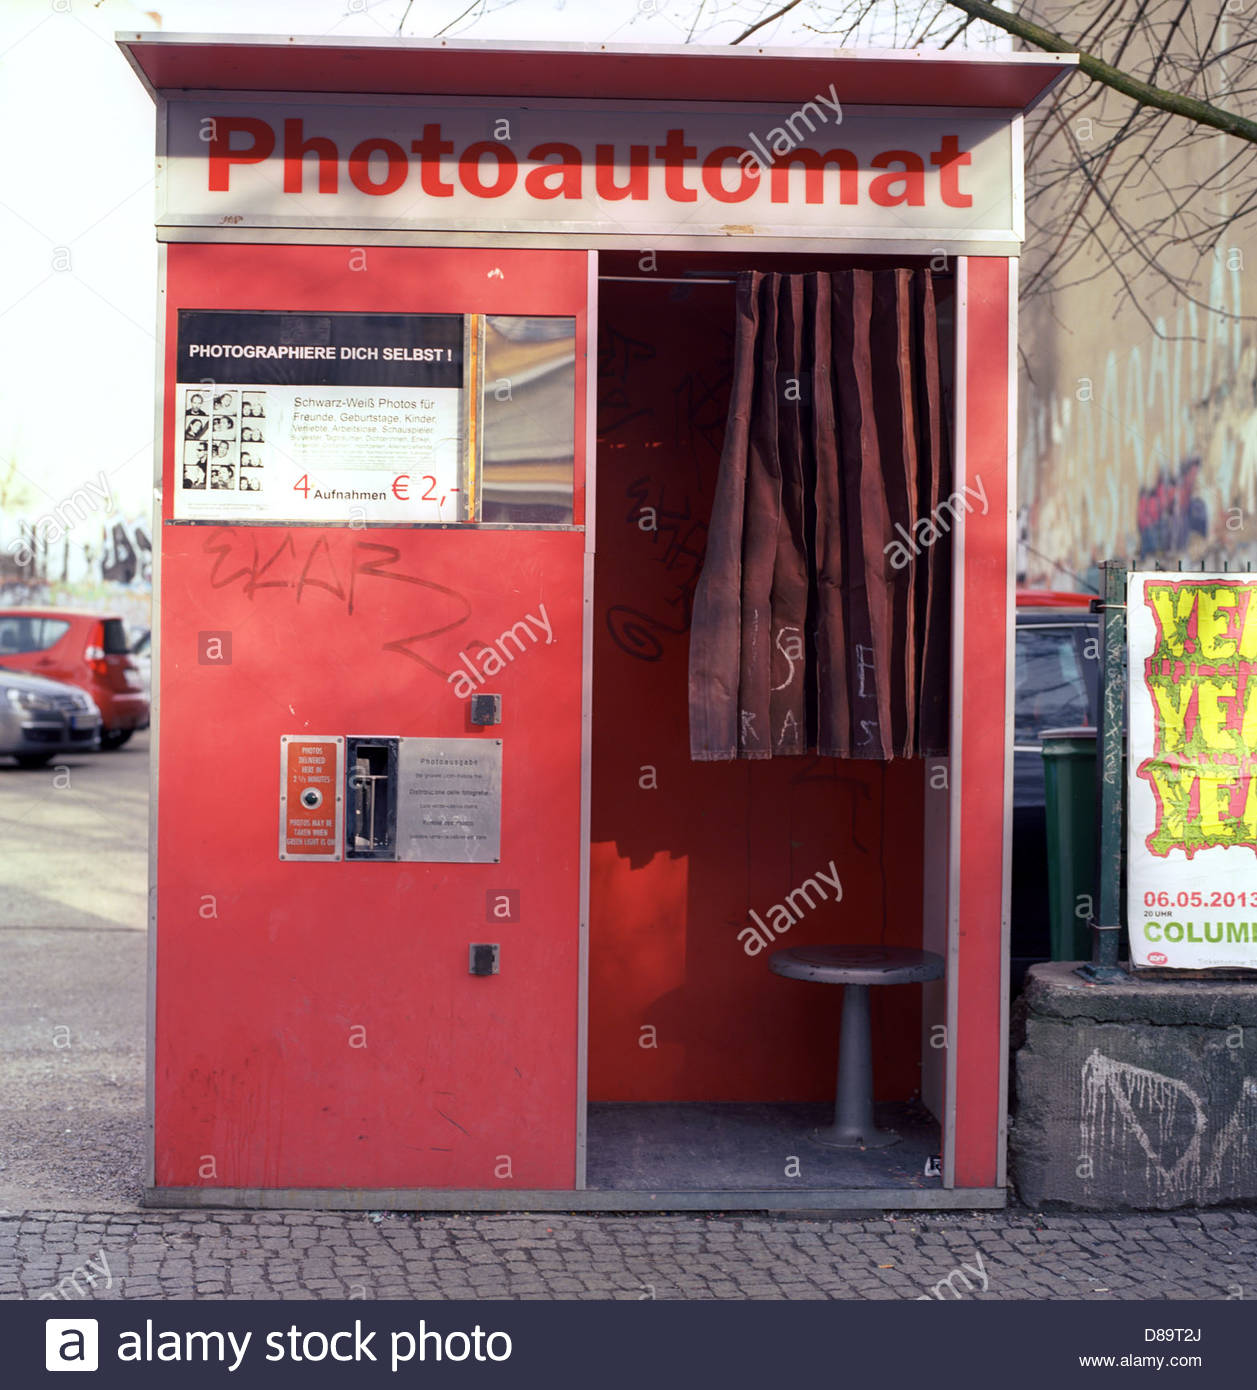 an old fashioned photo booth photoautomat on a street in berlin stock photo royalty free. Black Bedroom Furniture Sets. Home Design Ideas